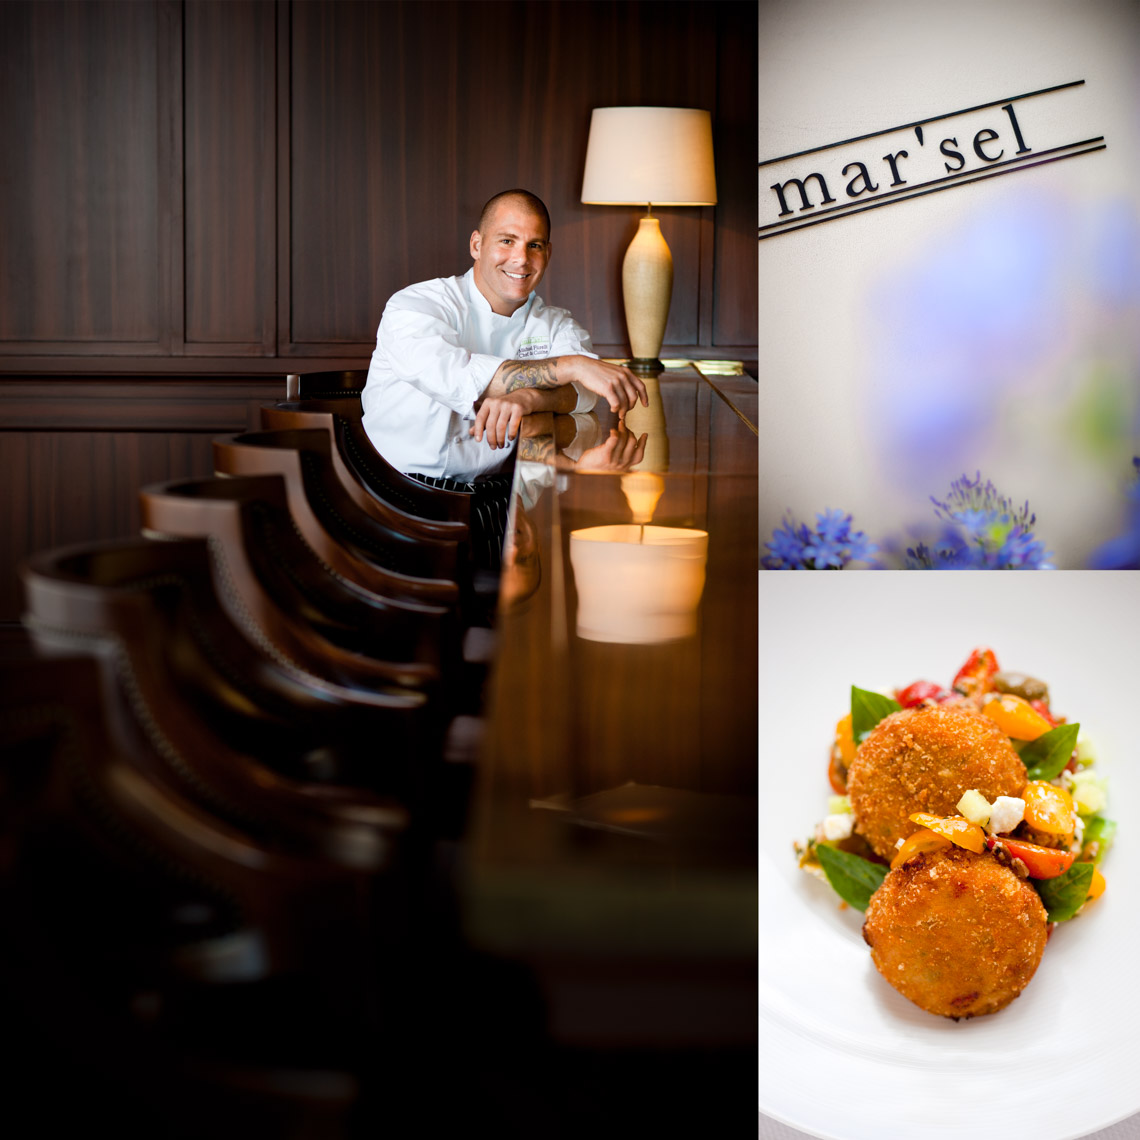 Los Angeles Photographer | Dana Hursey Photography | Top Chef Photography | Michael Fiorelli - Mar